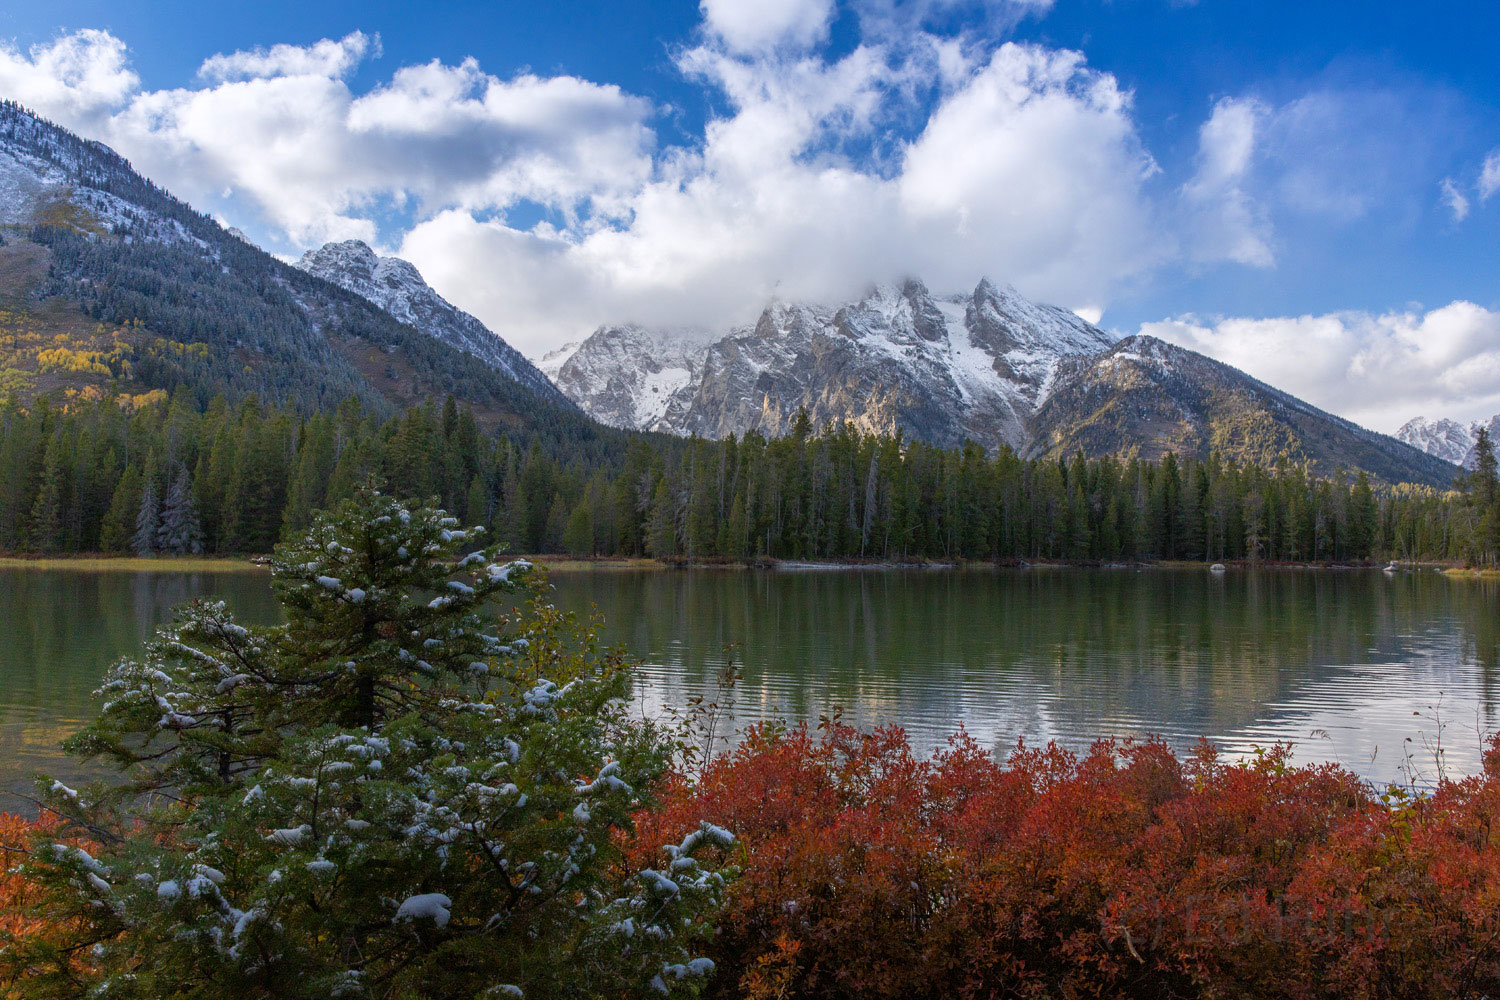 The blueberry bushes around String Lake have turned red in the cool nights of autumn.  But winter is not far and the first snows...